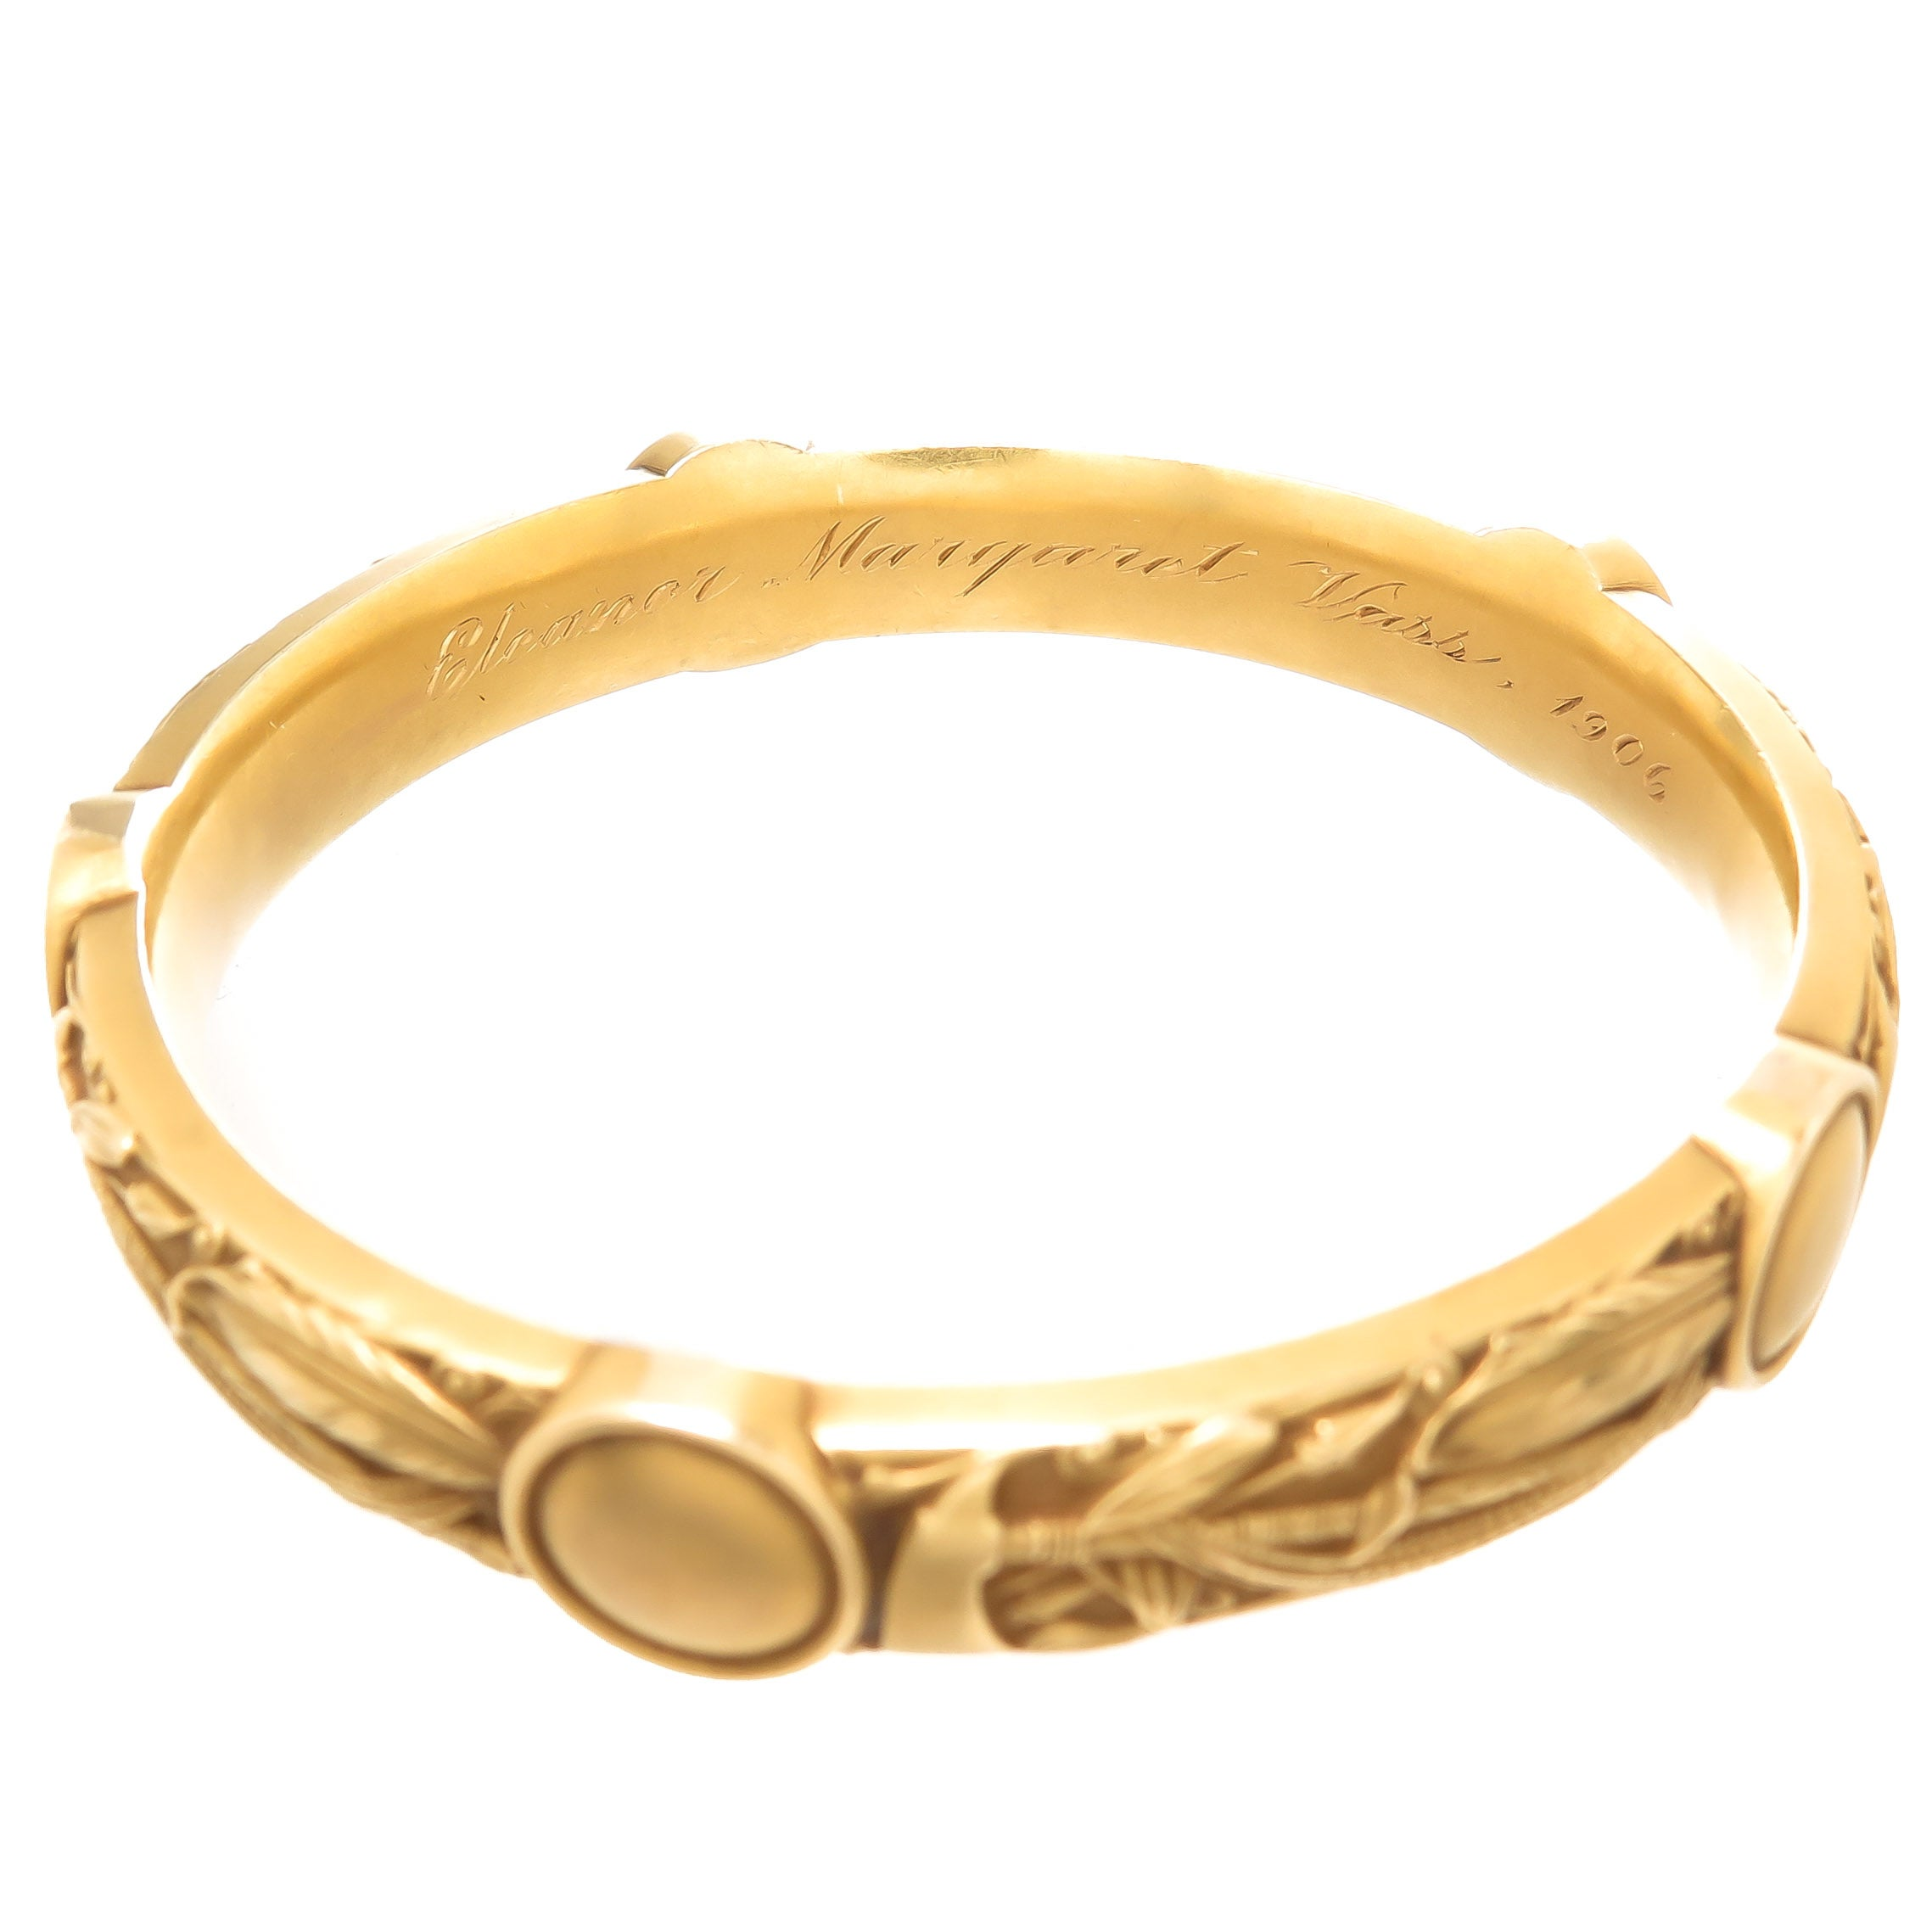 bangles bracelet product qvc page com bar inch gold mirror imperial bangle